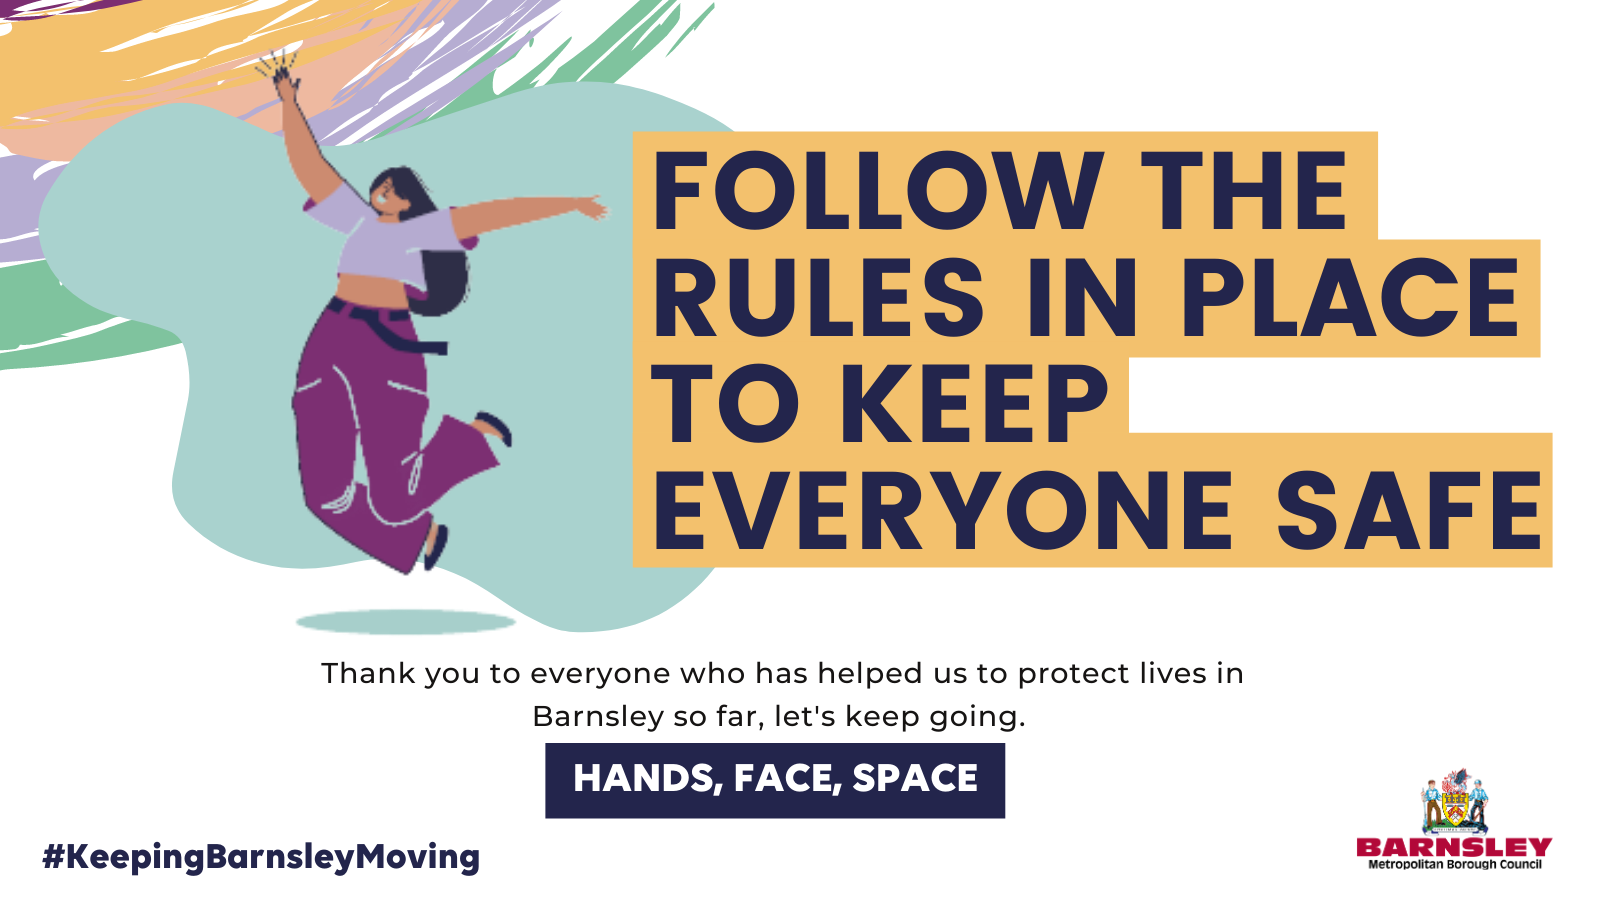 Follow the rules in place to keep everyone safe - thank you to everyone who has helped us to protect lives in Barnsley so far, lets keep going. Hands, Face, Space.